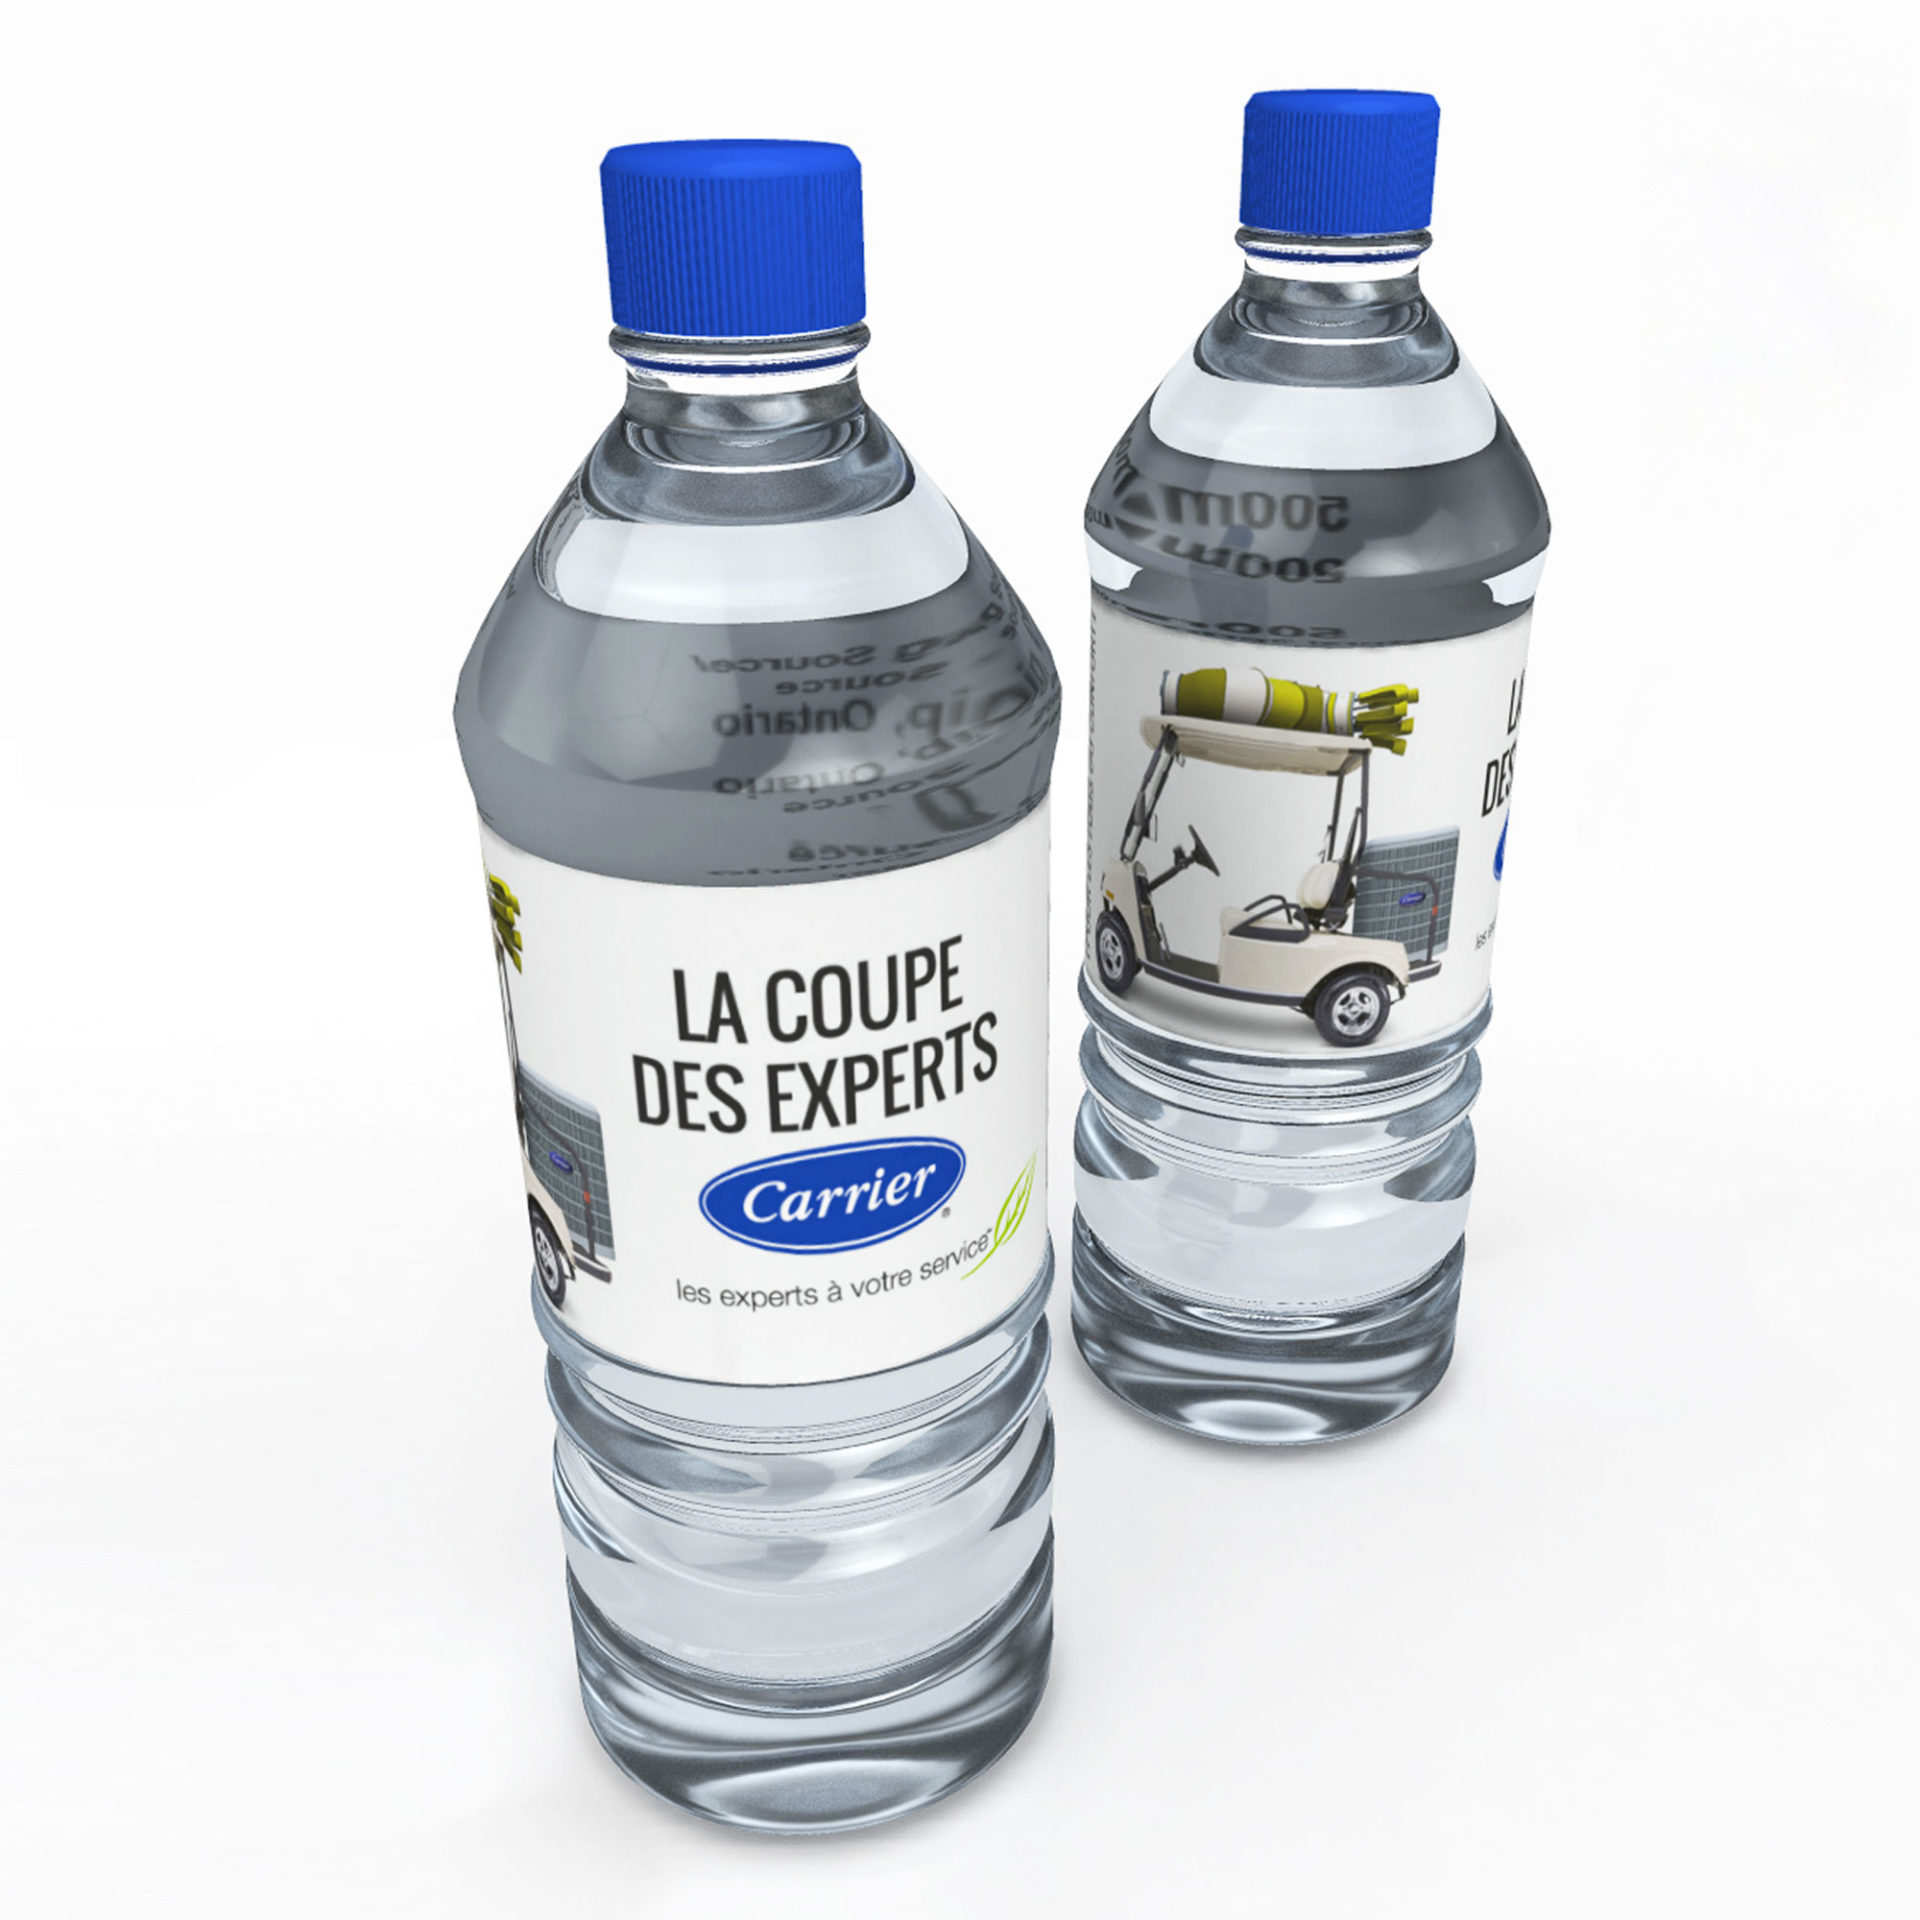 carrier_bouteille